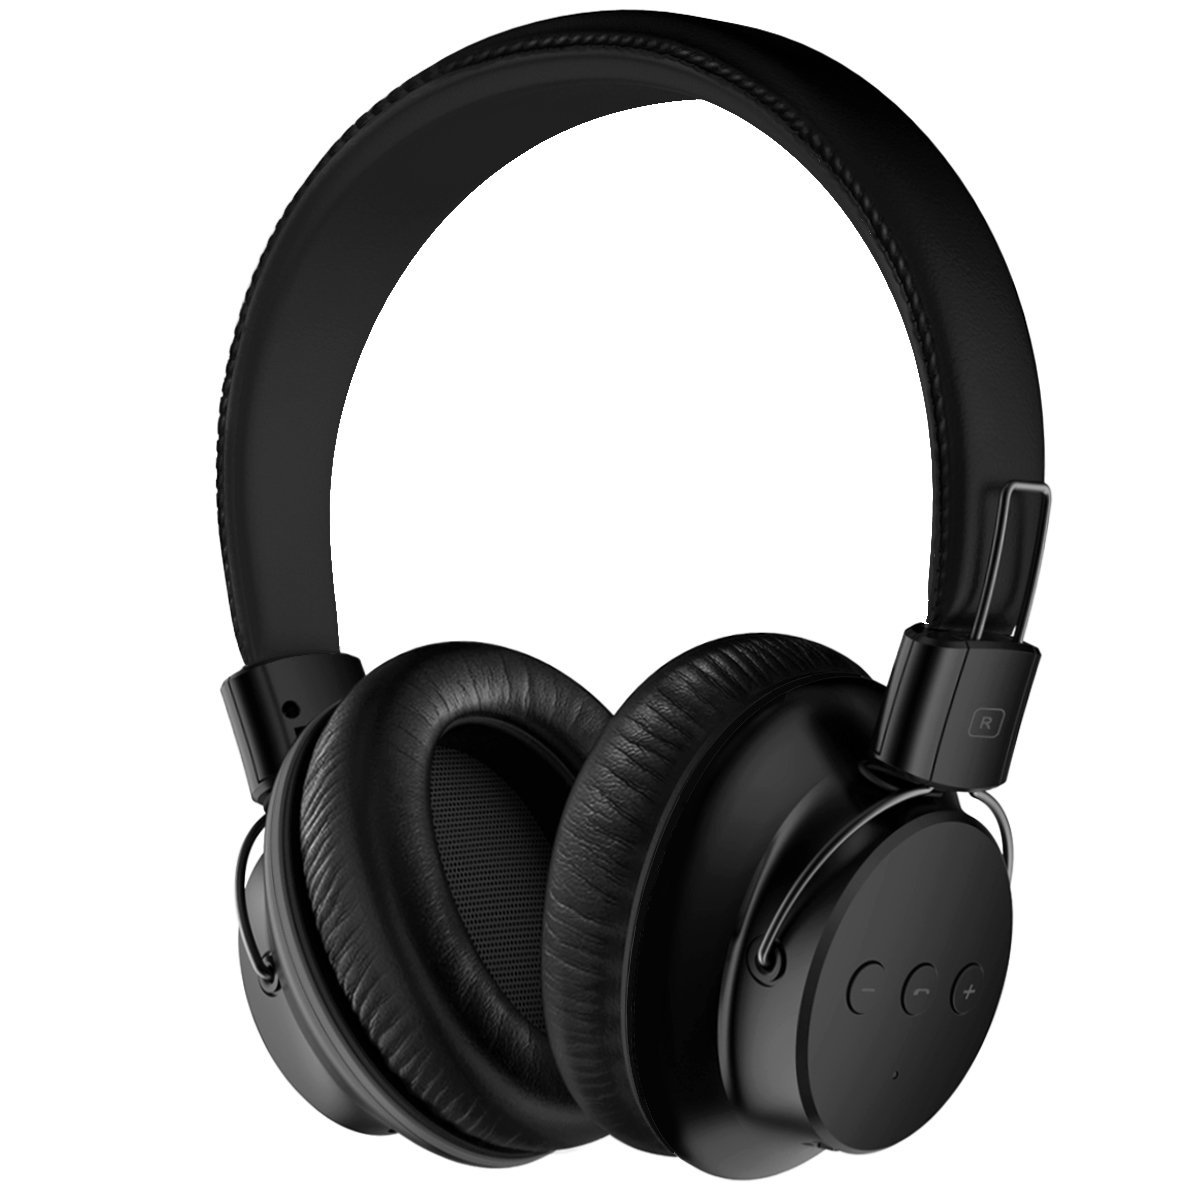 Mpow H1 Bluetooth Headphones Over Ear Lightweight, Comfortable for Long-time Wearing, Hi-Fi Stereo Wireless Headphones, Foldable Headset w/Built-in Mic and Wired Mode for PC/Cell Phones